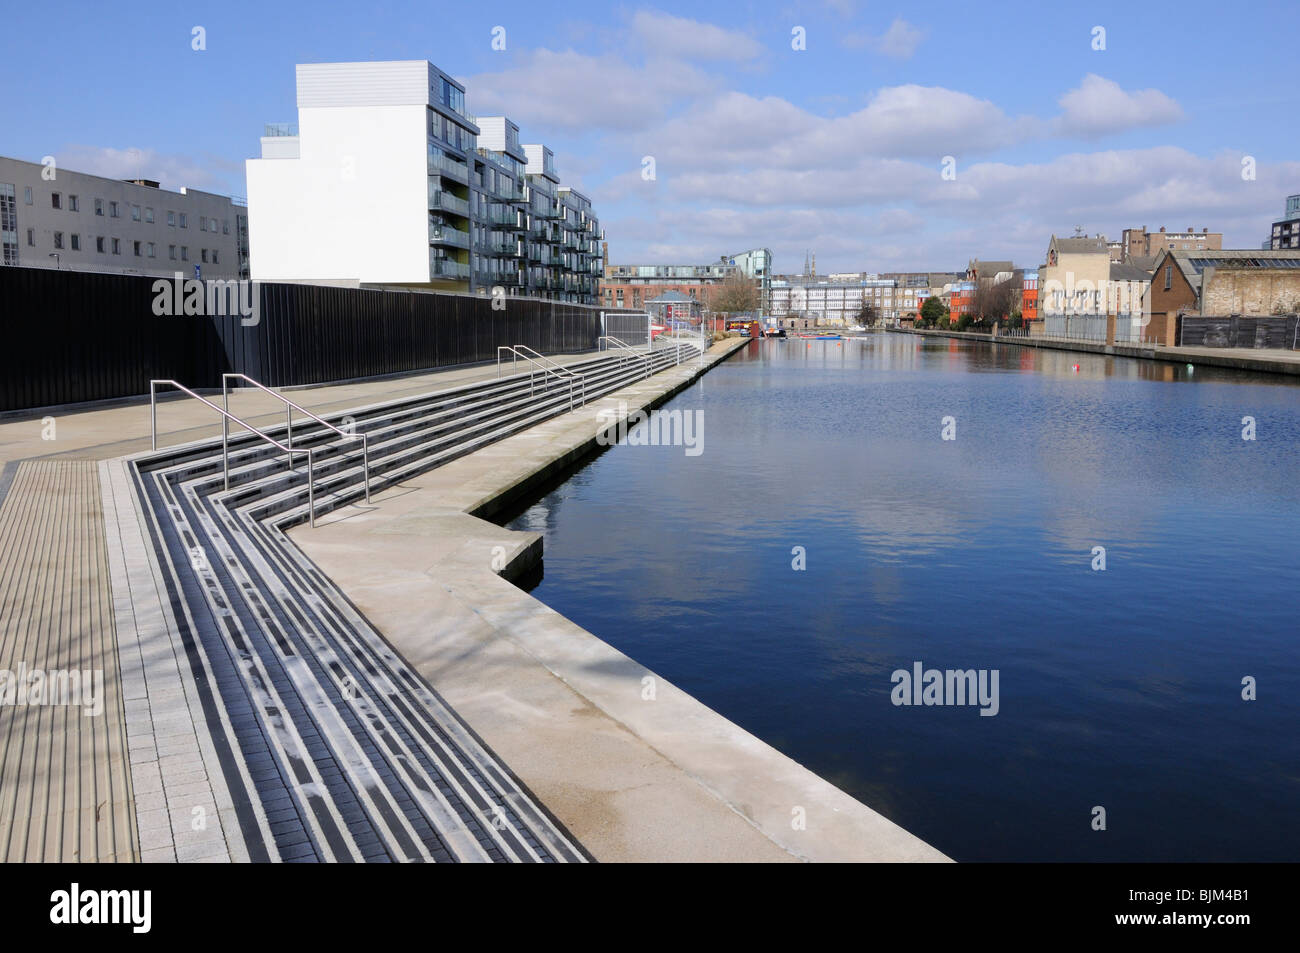 City Road basin, Islington, London, England, UK. - Stock Image